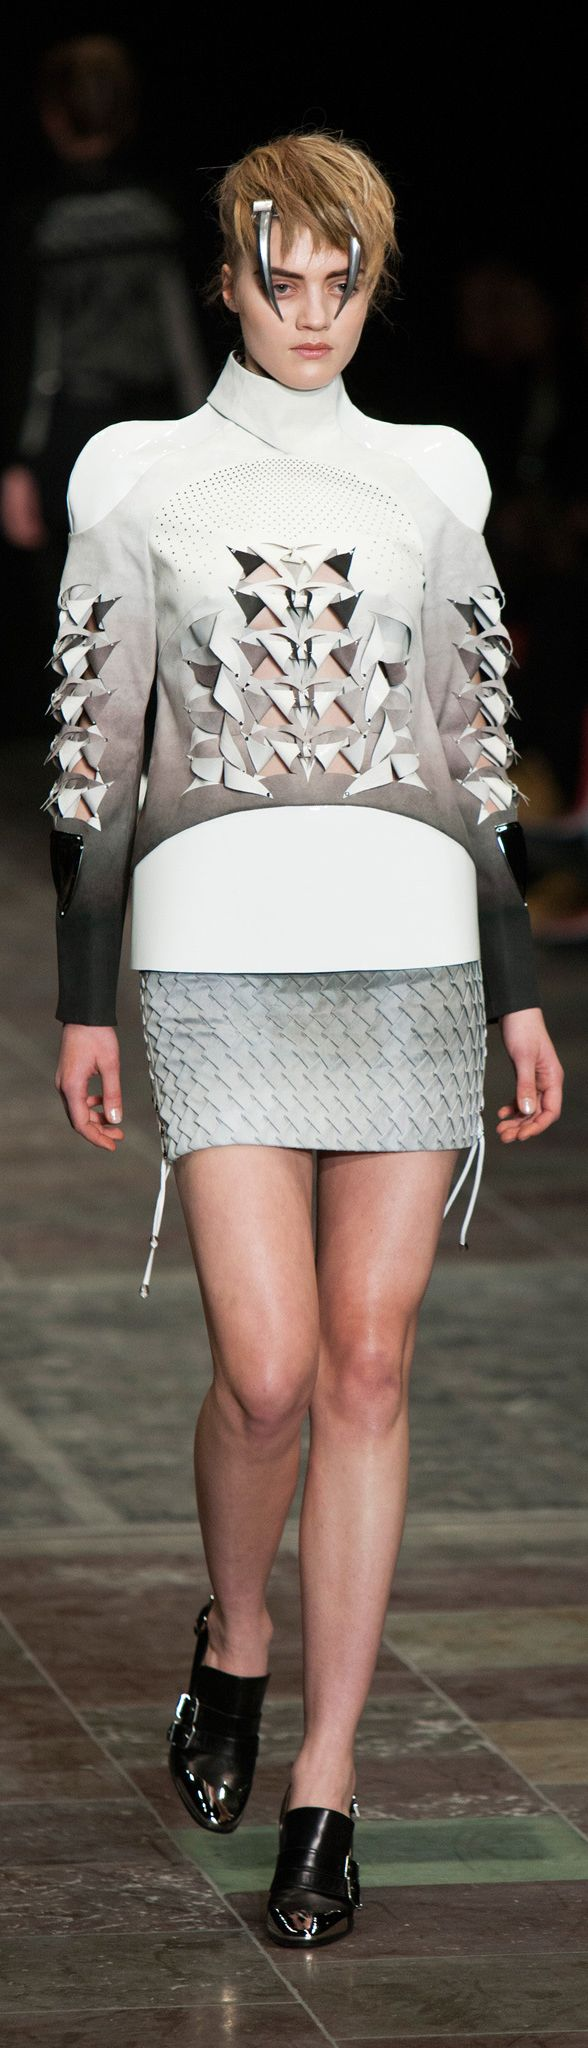 Sculptural shoulders with symmetrical 3D cut & fold pattern detail; structured fashion; creative cuts // Anne Sofie Madsen